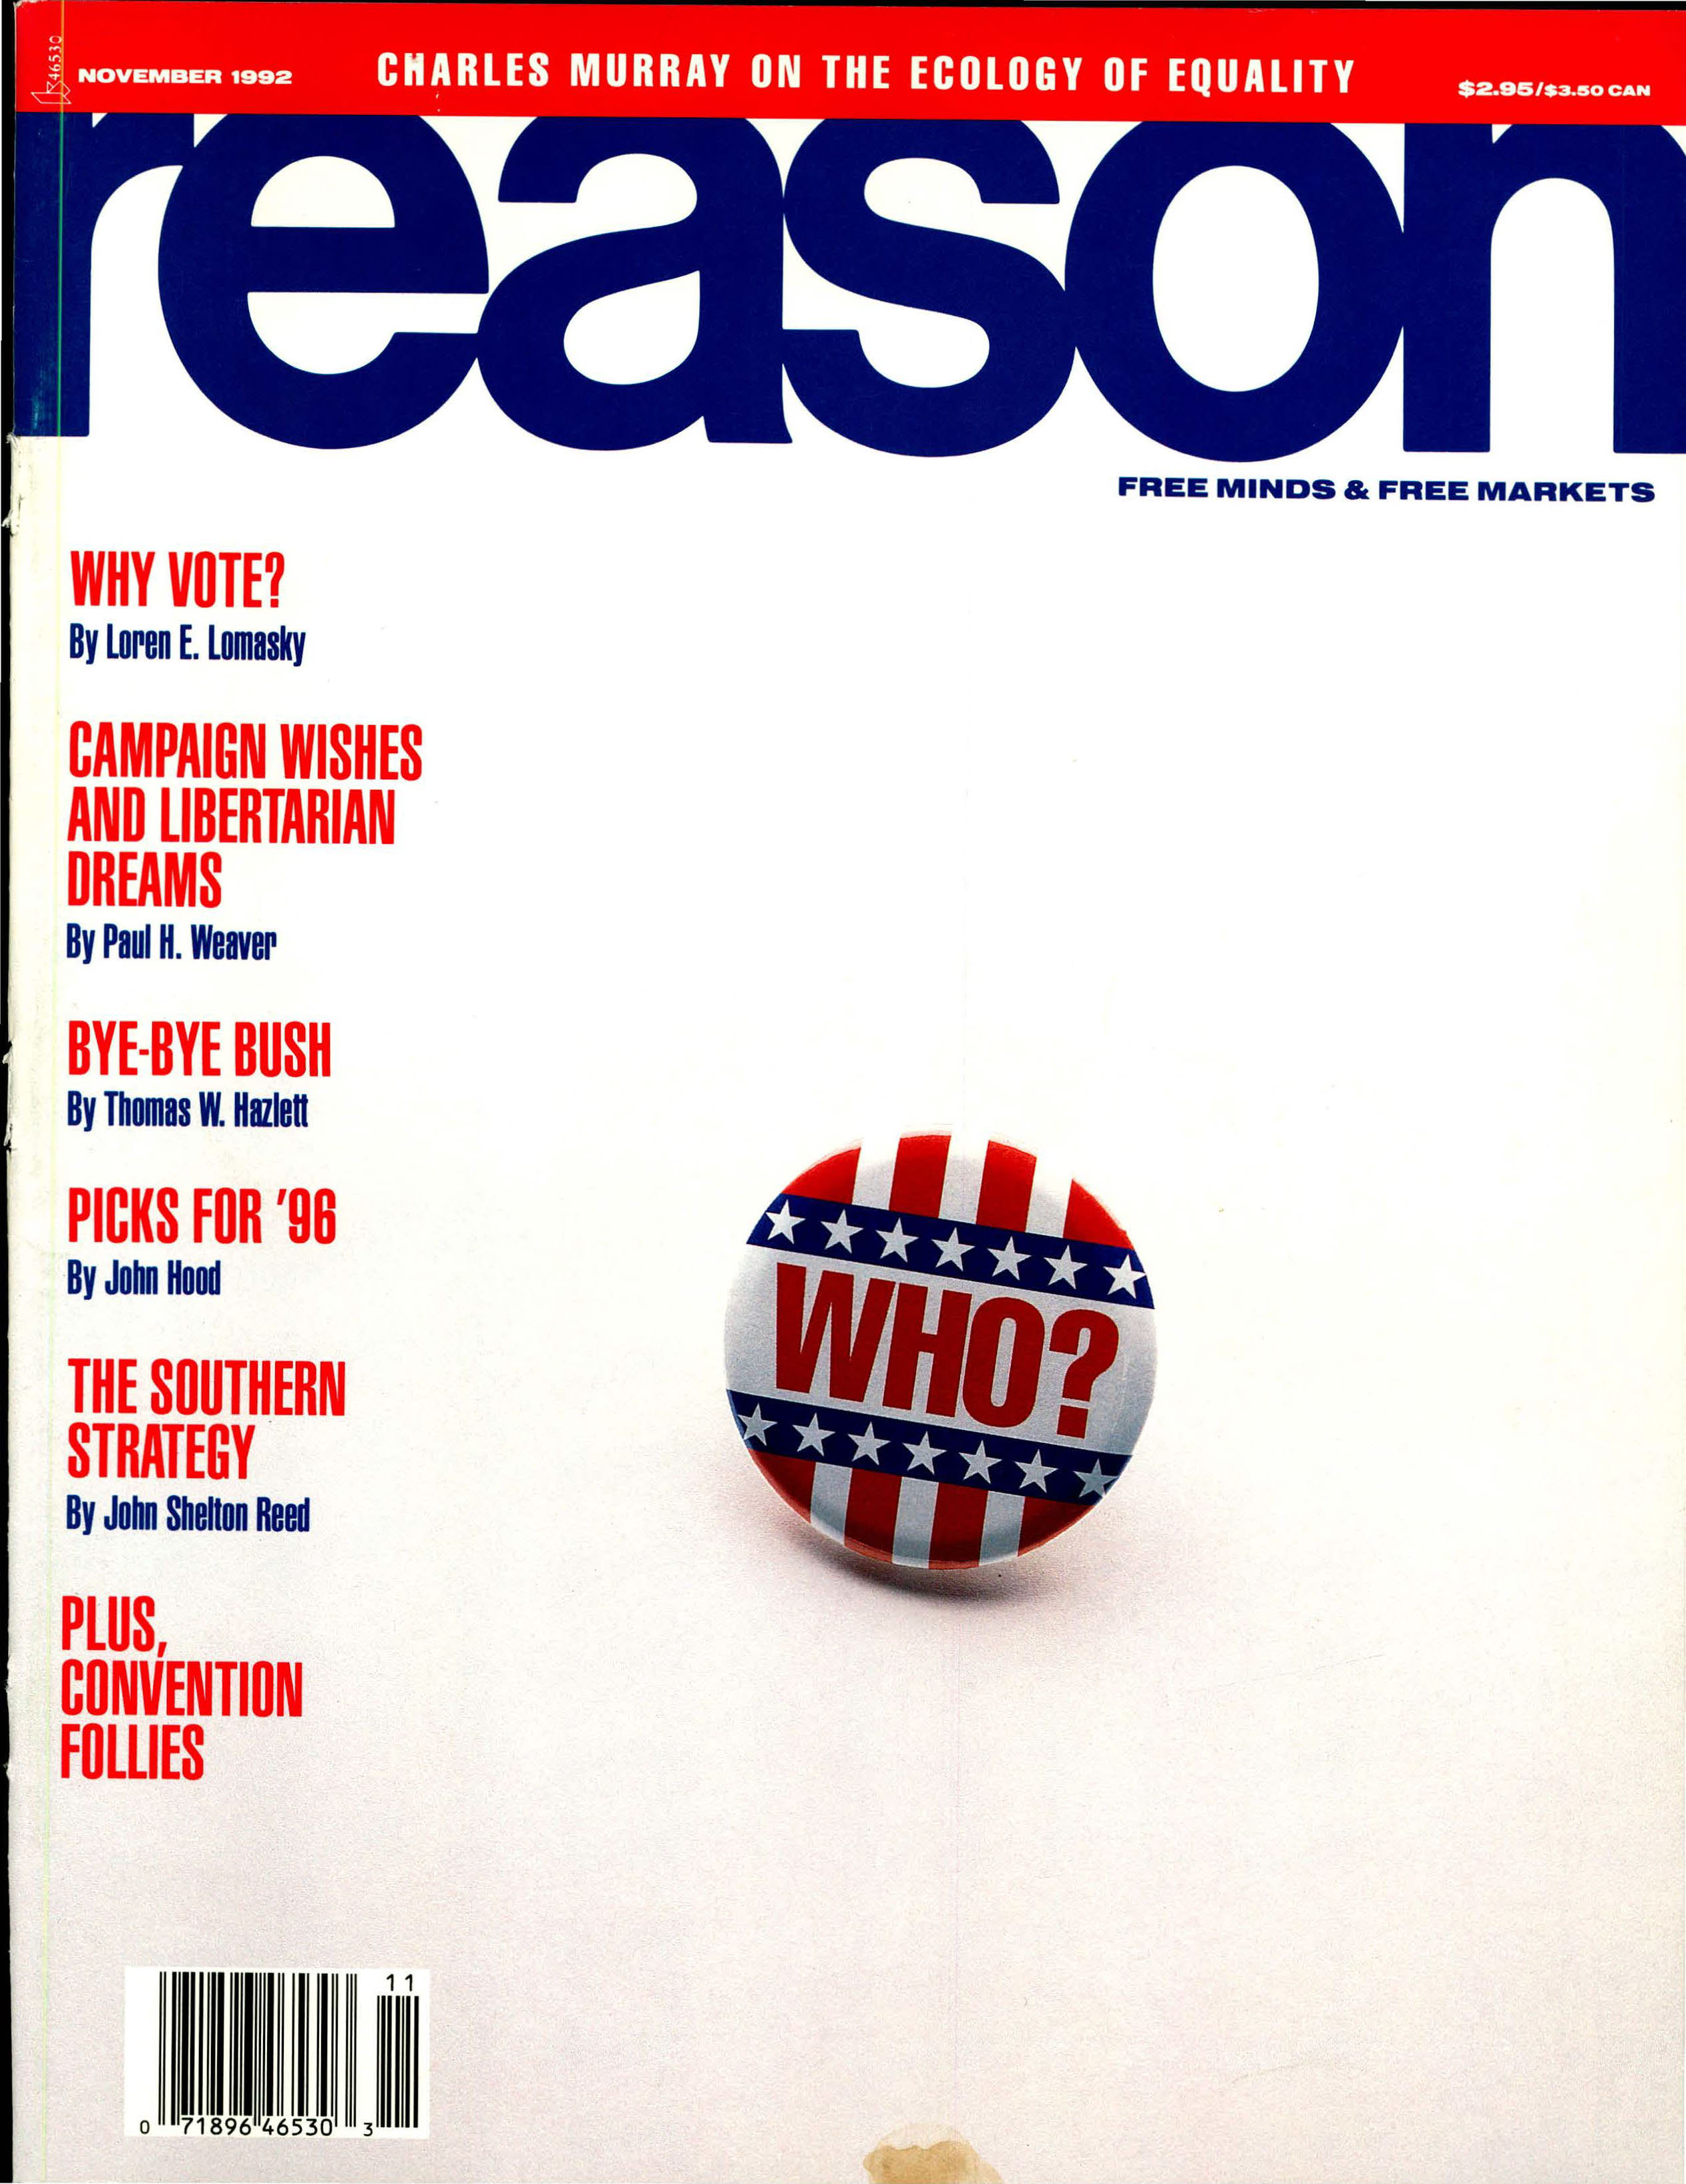 Reason Magazine, November 1992 cover image